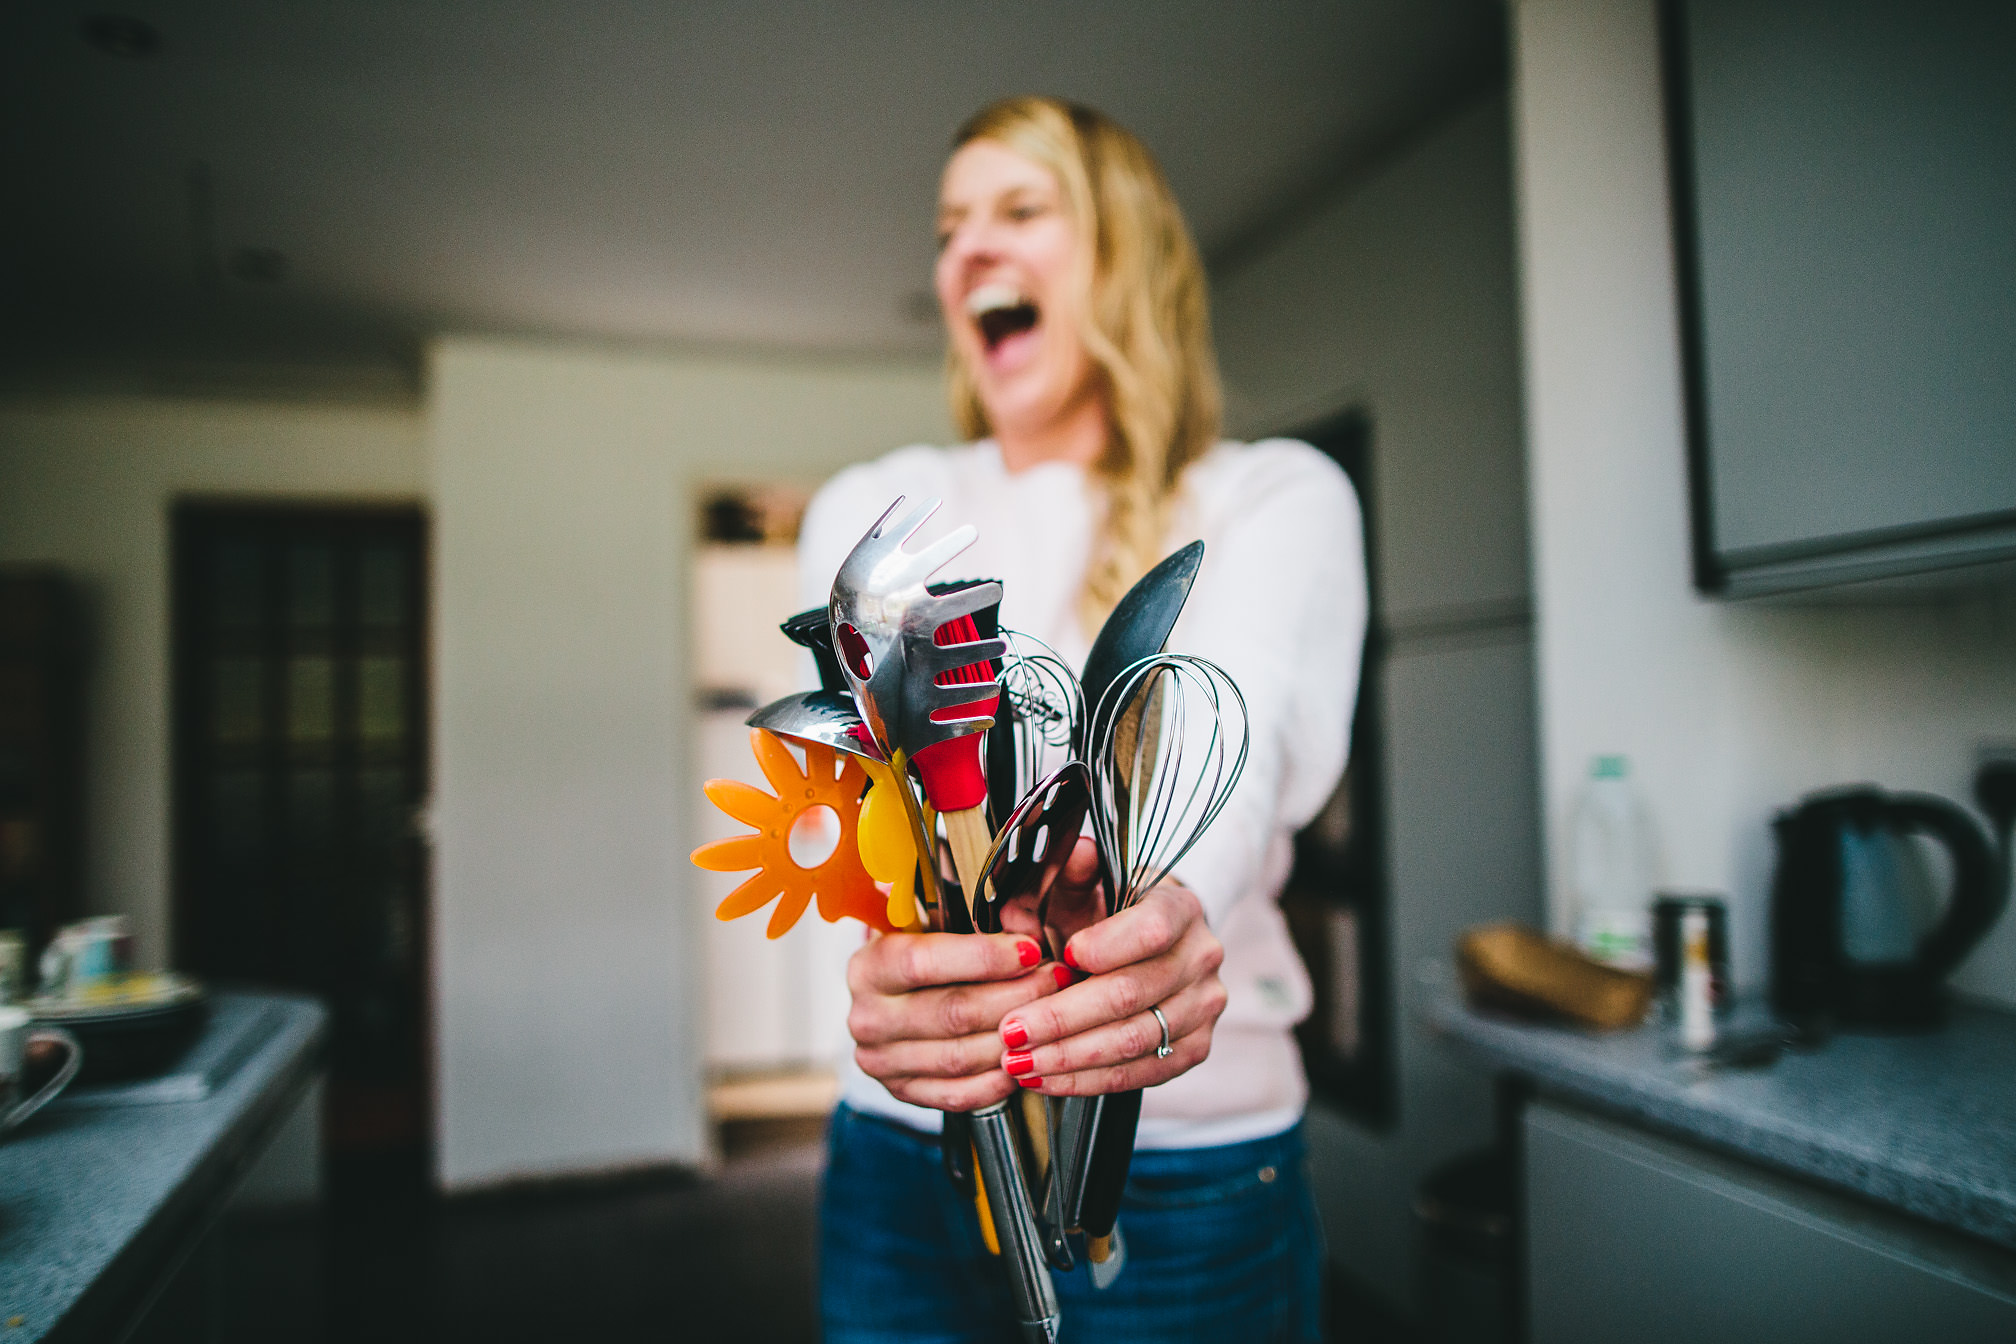 A bouquet made from kitchen utensils